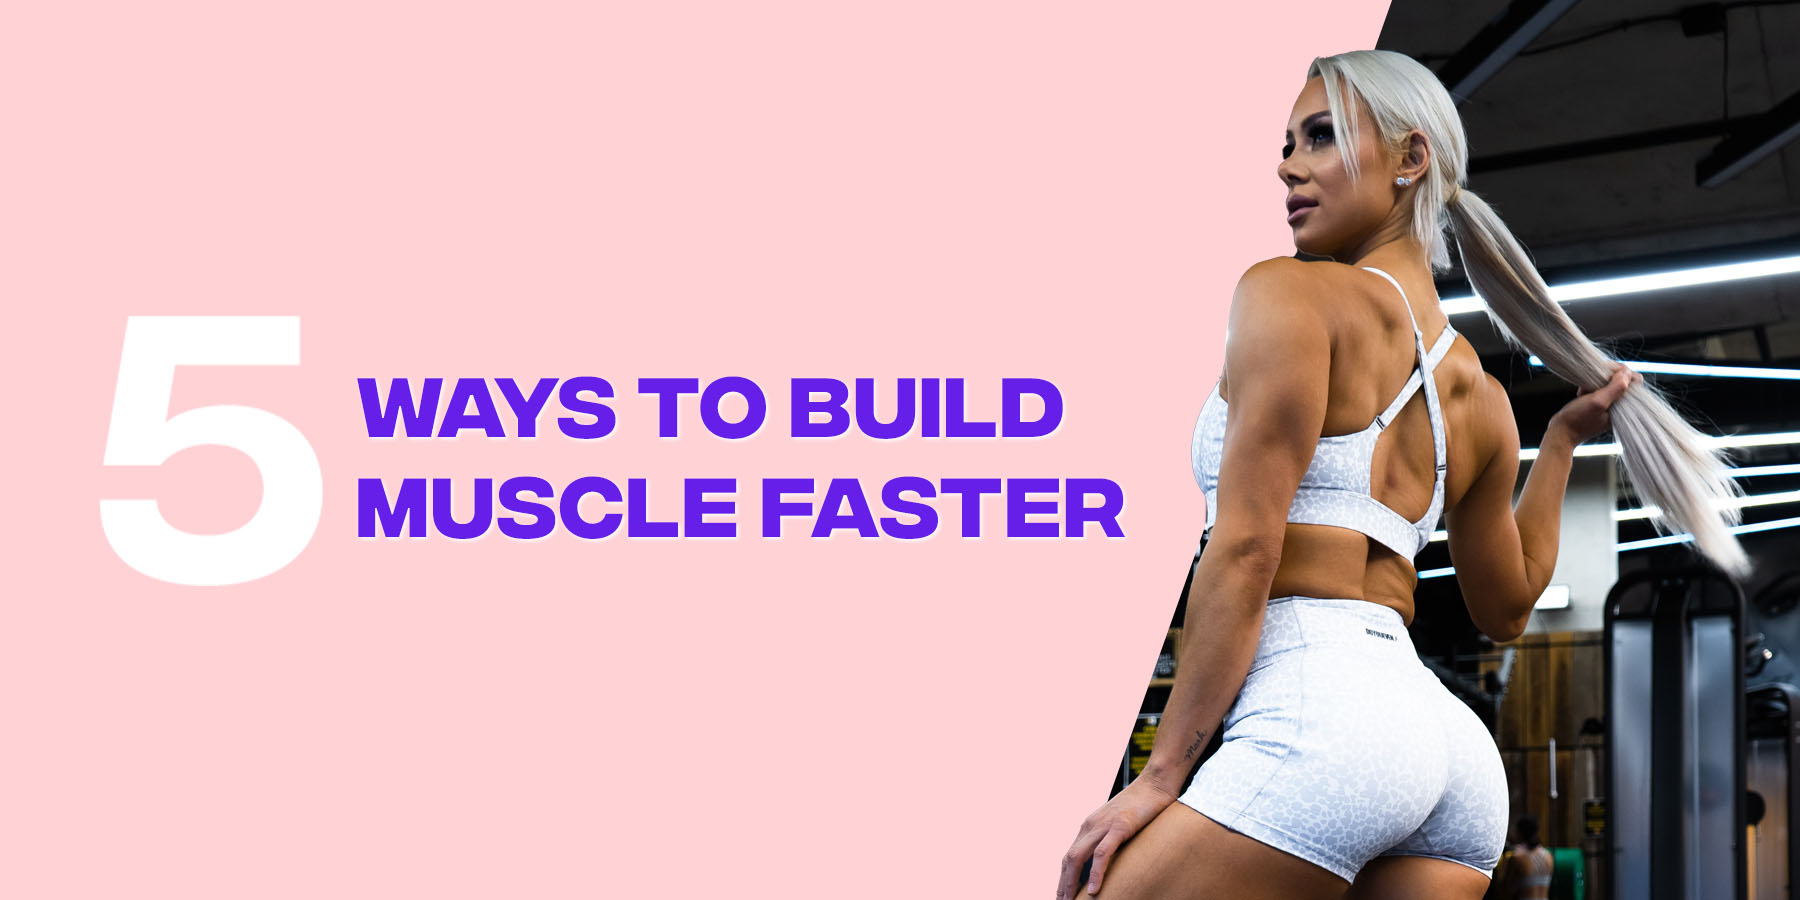 5 Ways To Build Muscle Faster